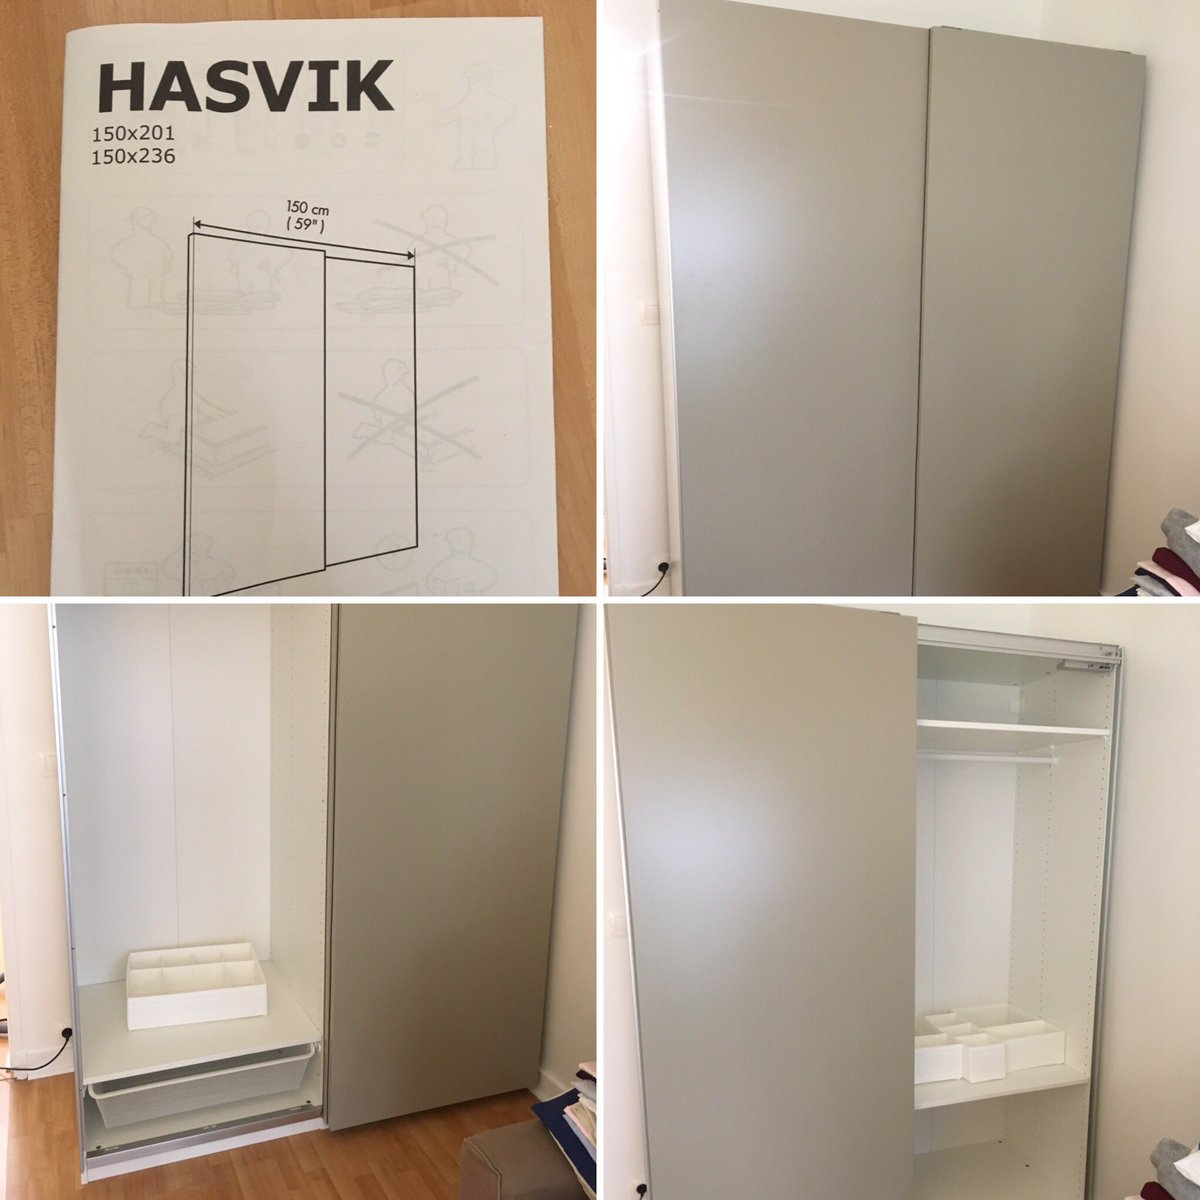 Meuble Dressing Ikea Hasvik Tagged Tweets And Downloader Twipu